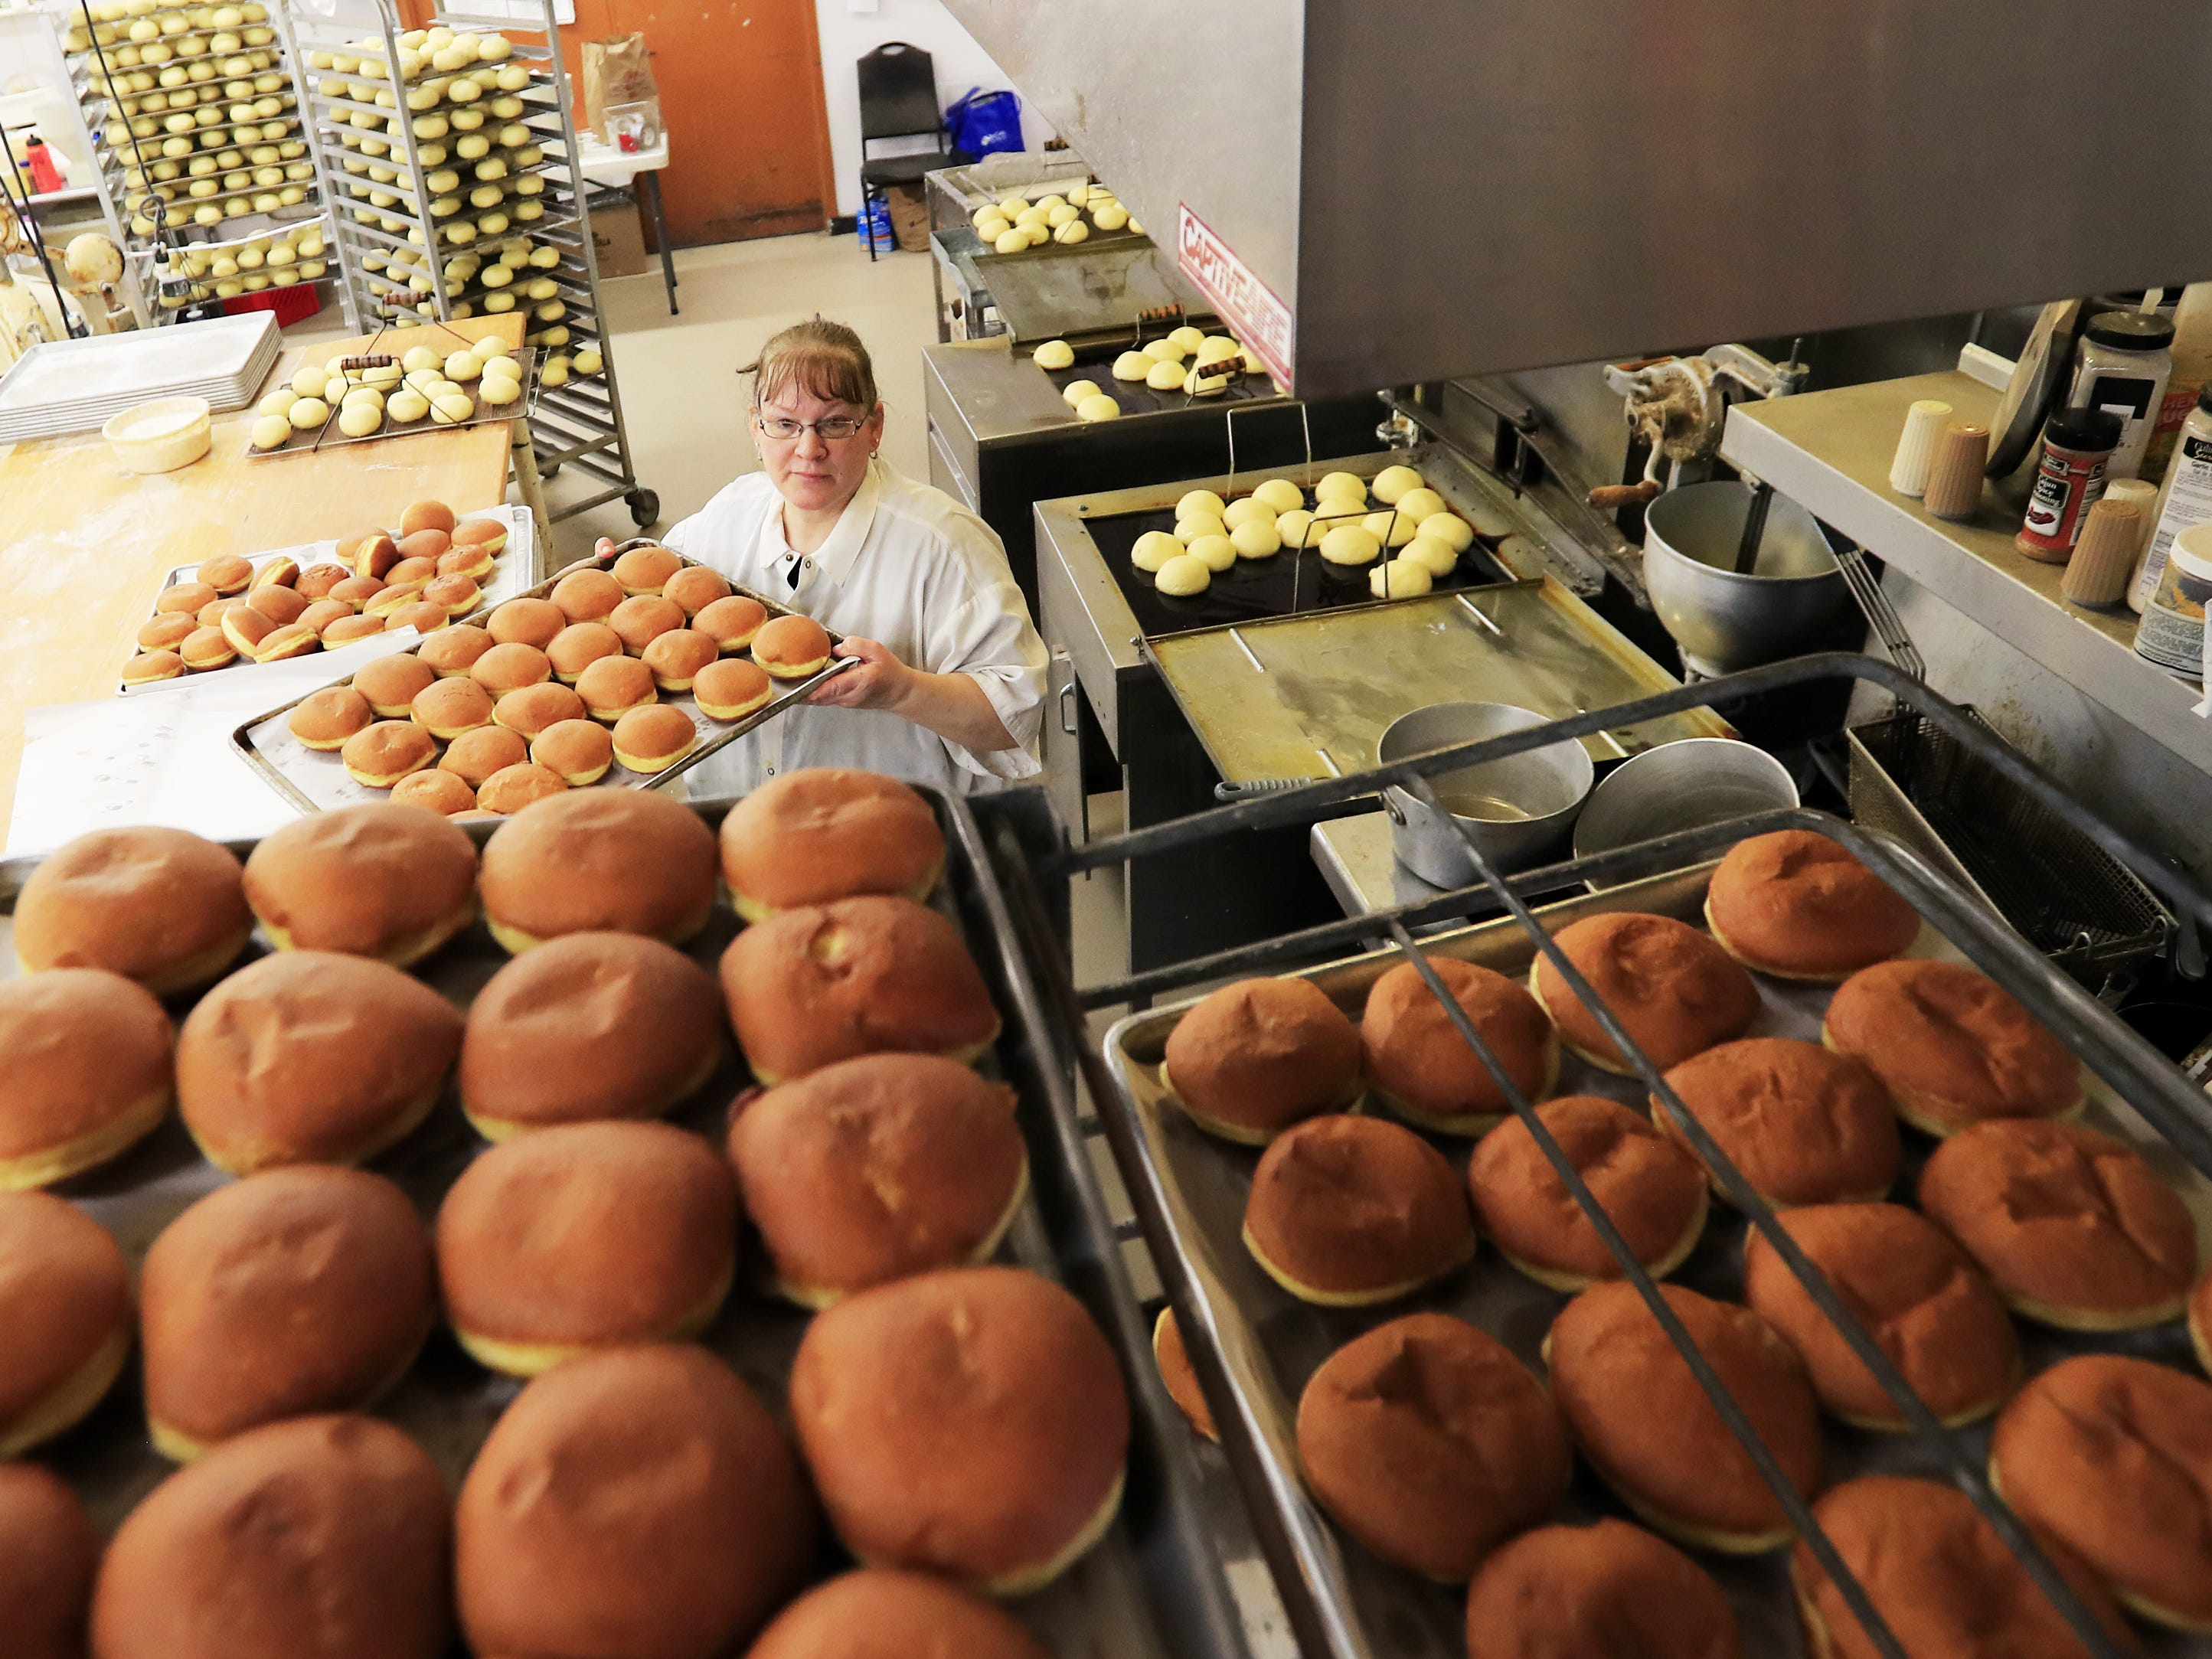 Janice Smurawa finishes a batch of paczki at Smurawa's Country Bakery on Tuesday, Feb. 26, 2019, in Pulaski.